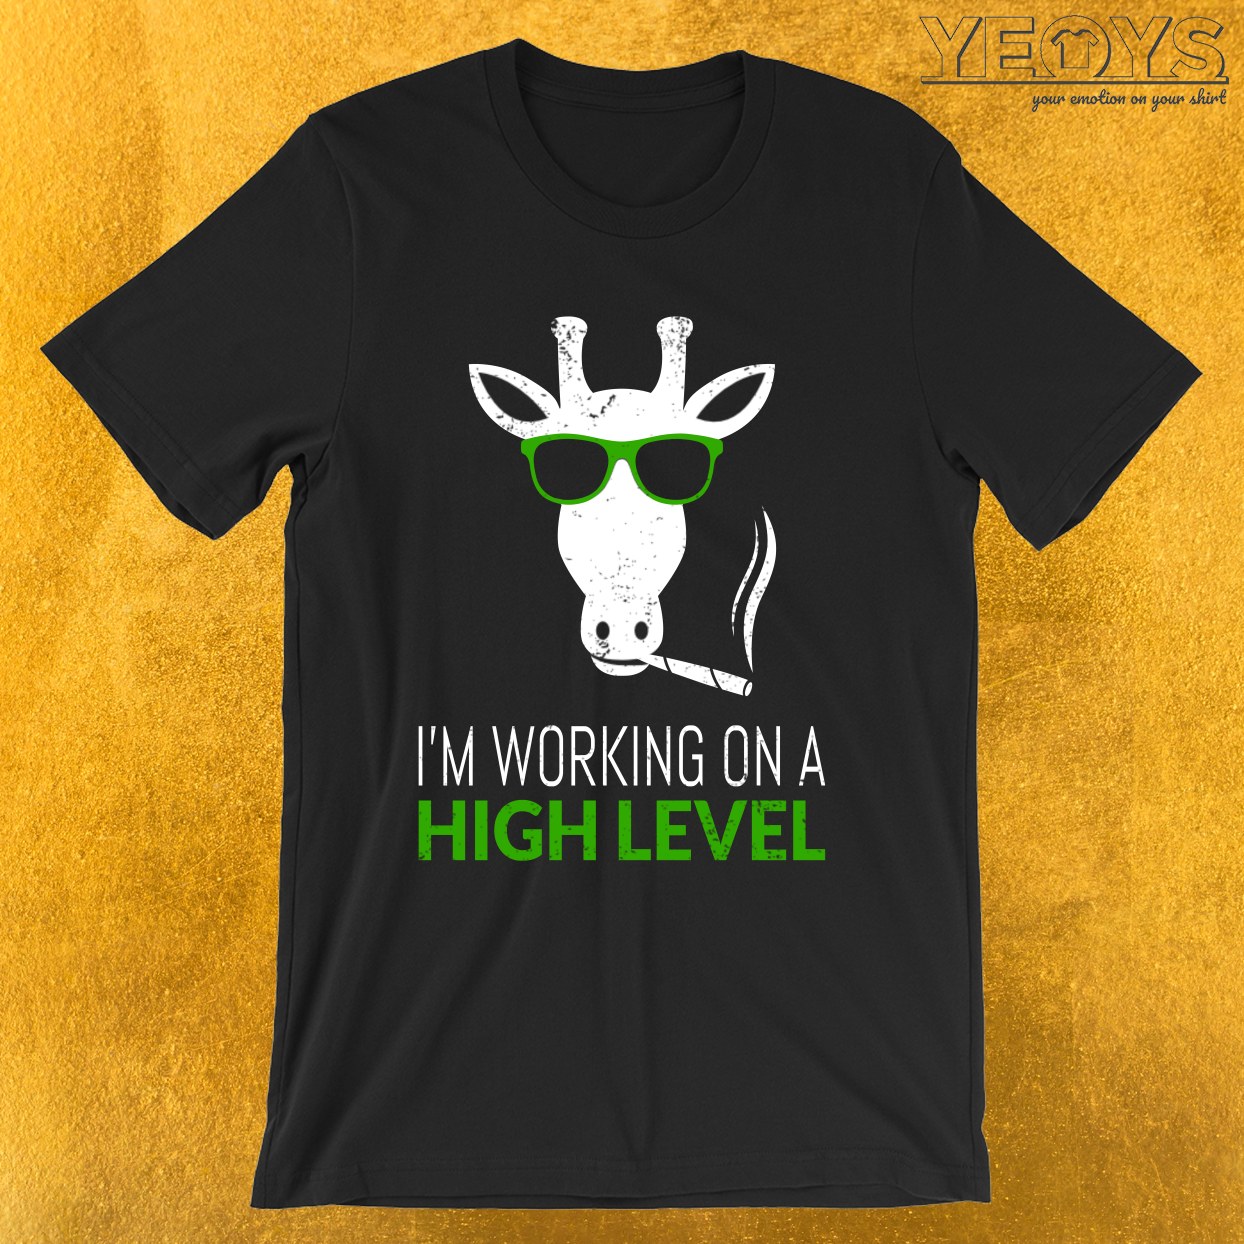 I'm Working On A High Level – Giraffe Pun Tee